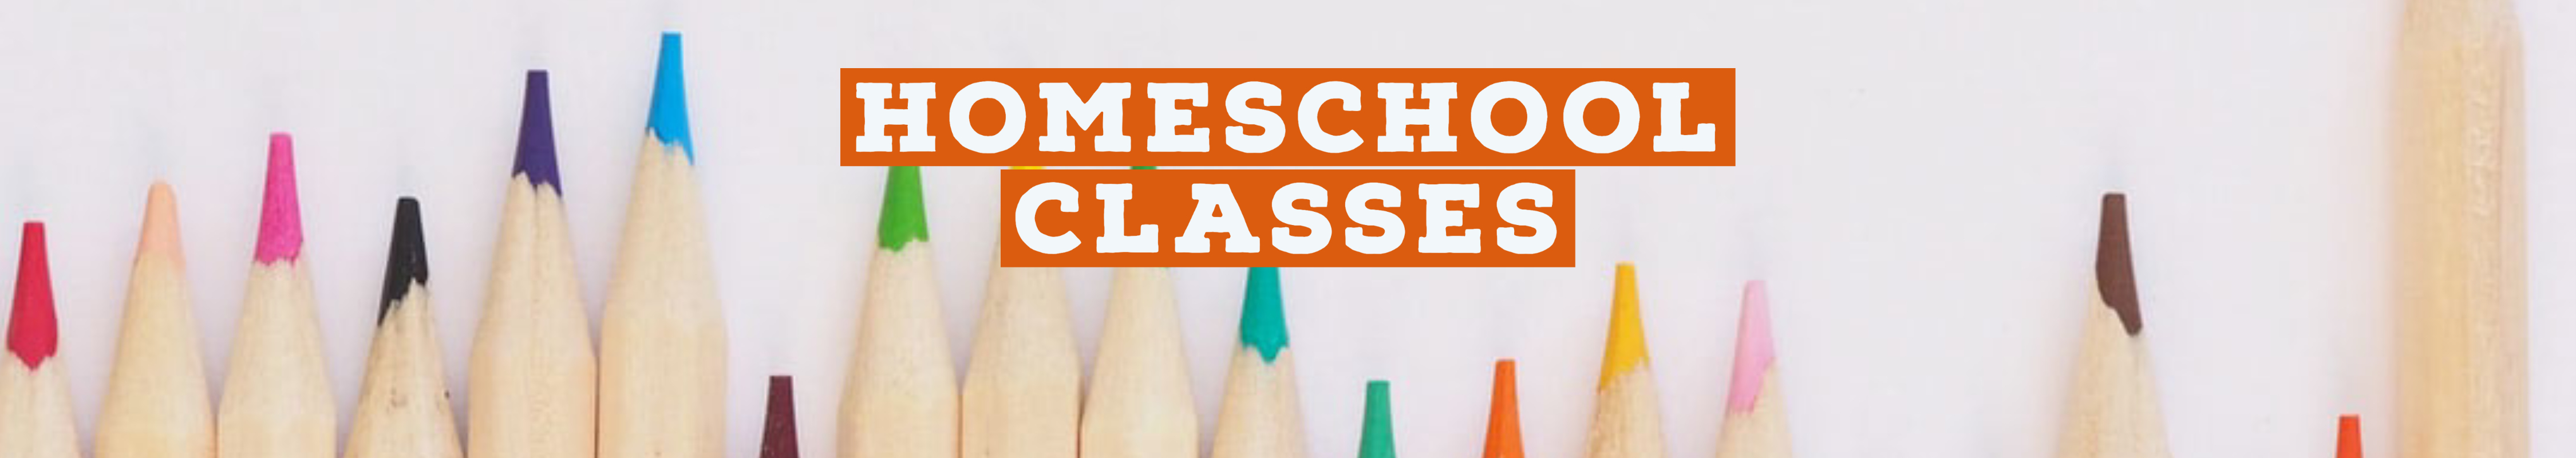 Image of colored pencils with the text Homeschool Classes